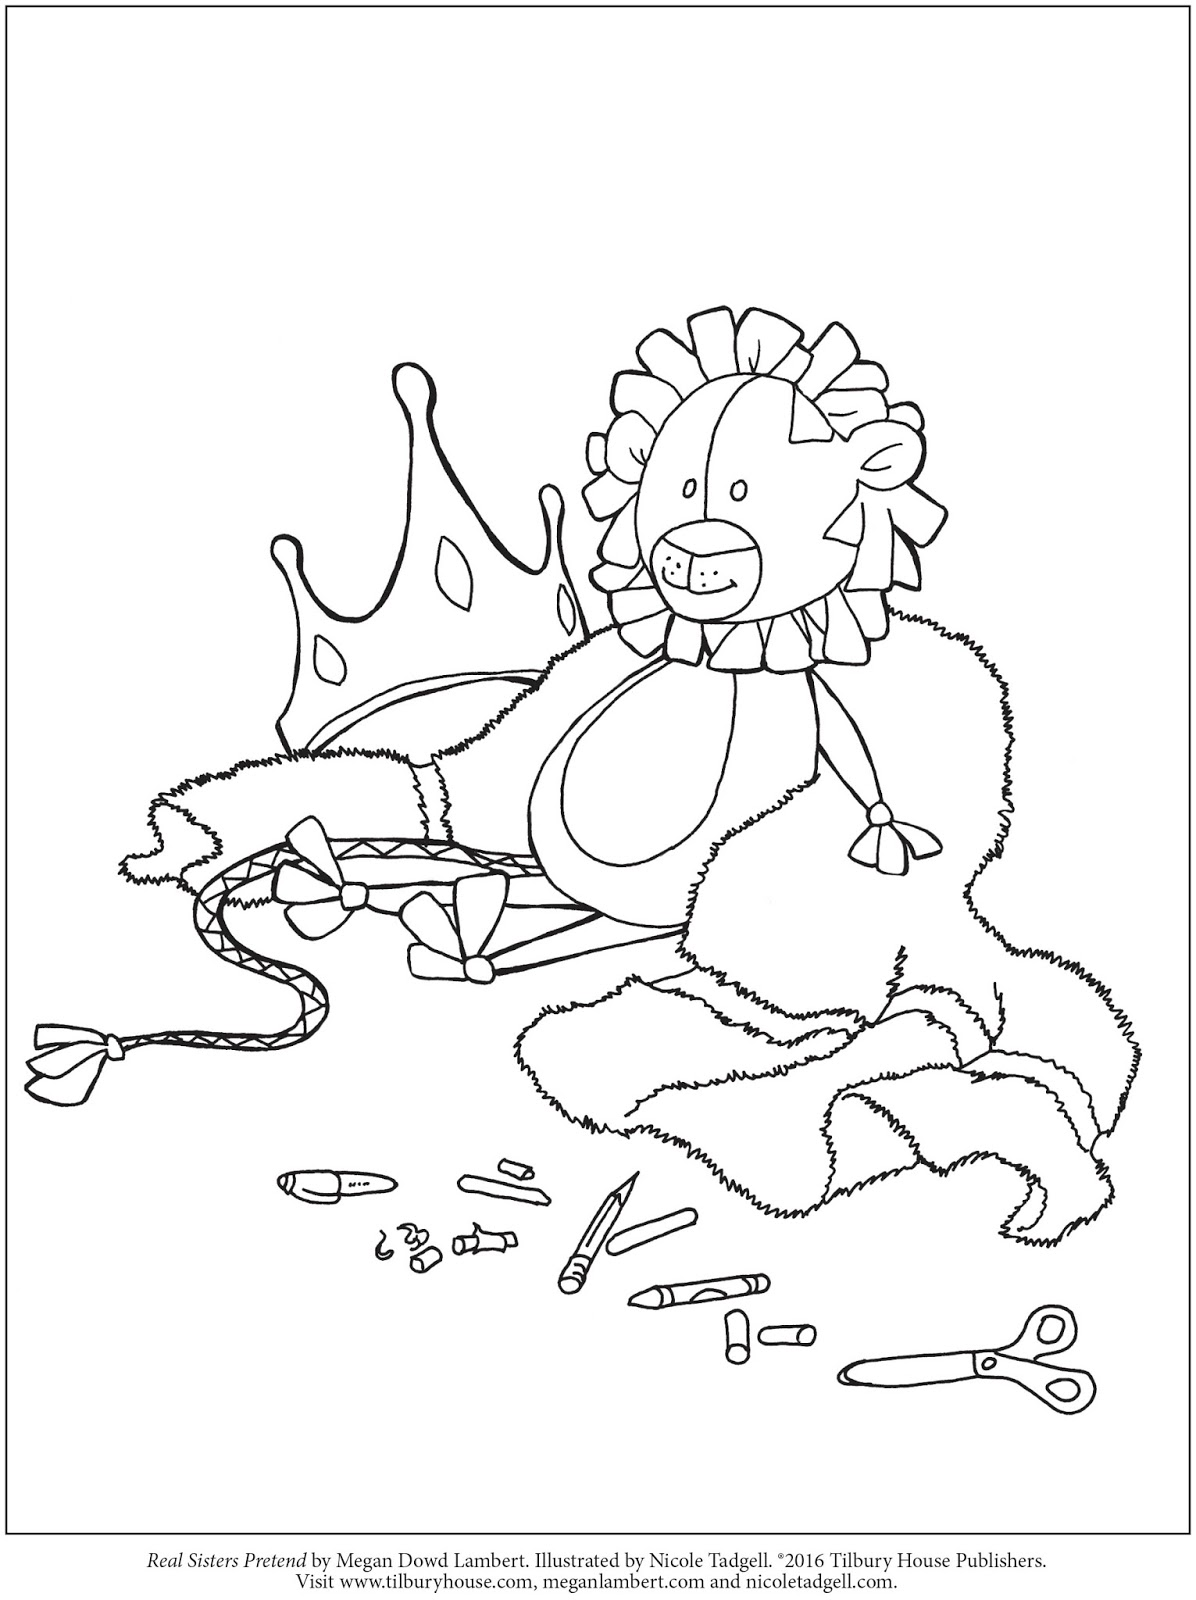 Nicole Tadgell Illustration: Coloring pages for Real Sisters Pretend